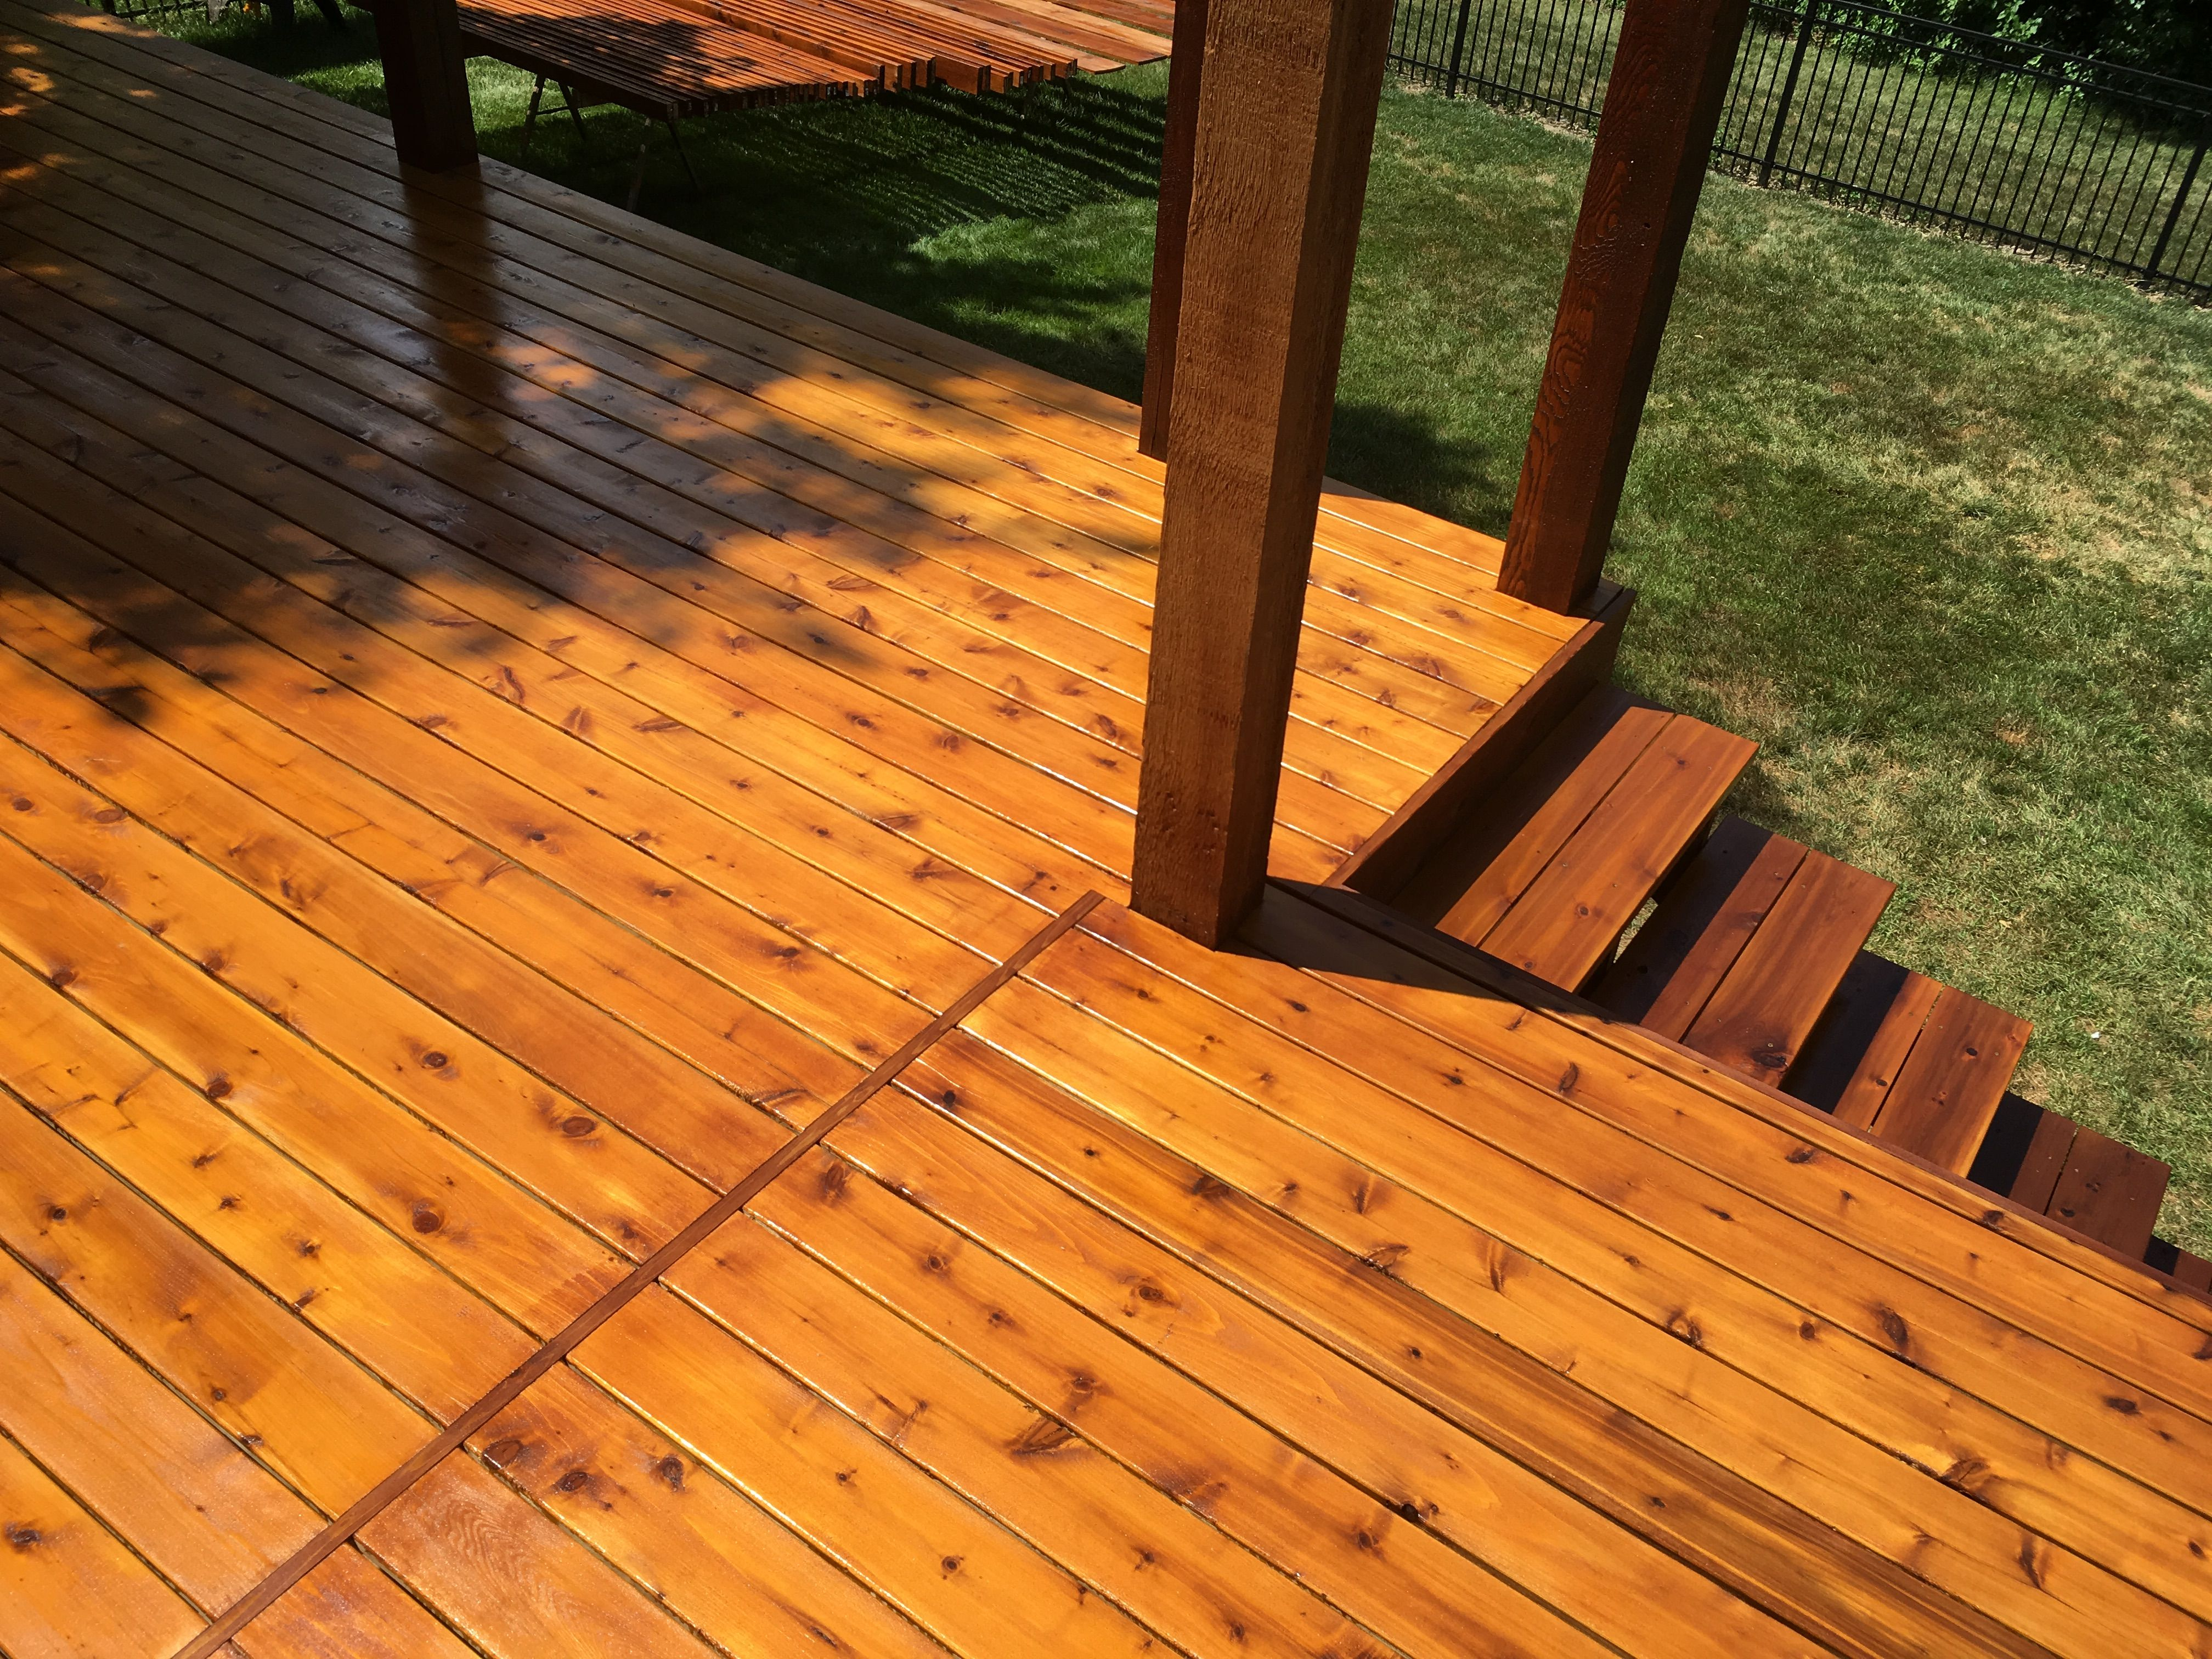 Two Tone Cedar Deck Cabot Stain Australian Oil The Posts And Railing Are Getting Two Coats Of Sunlit Walnut The Floor B Staining Deck Walnut Stain Oak Stain